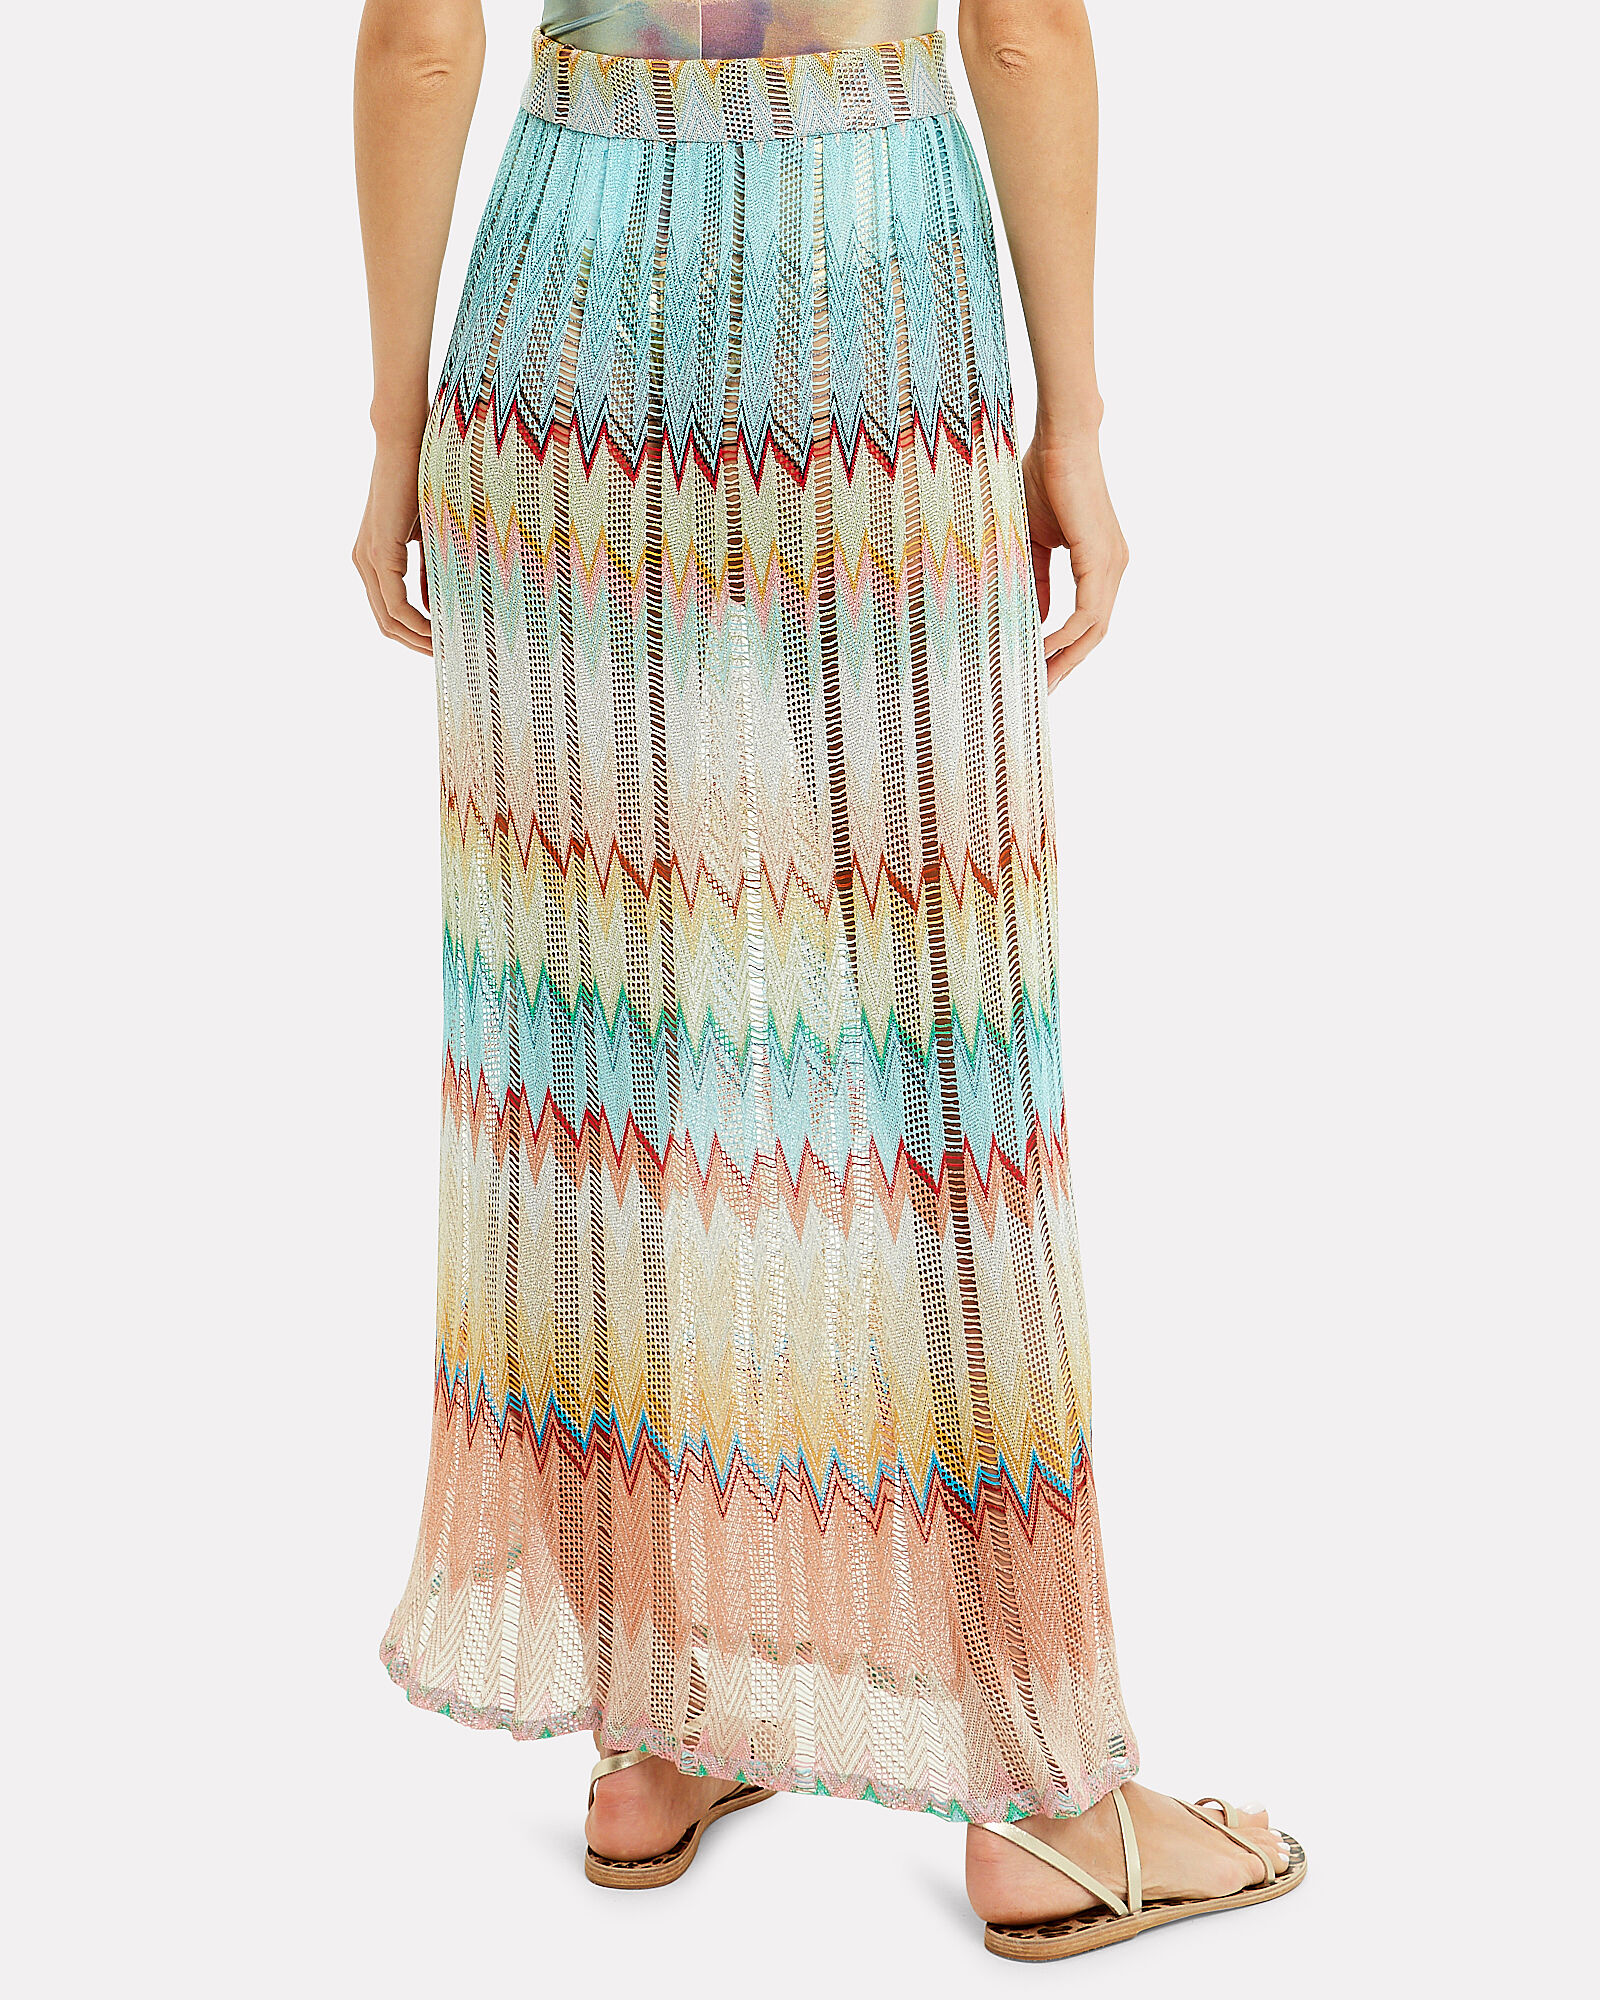 Open Knit Maxi Skirt, turquoise/yellow/beige/coral, hi-res